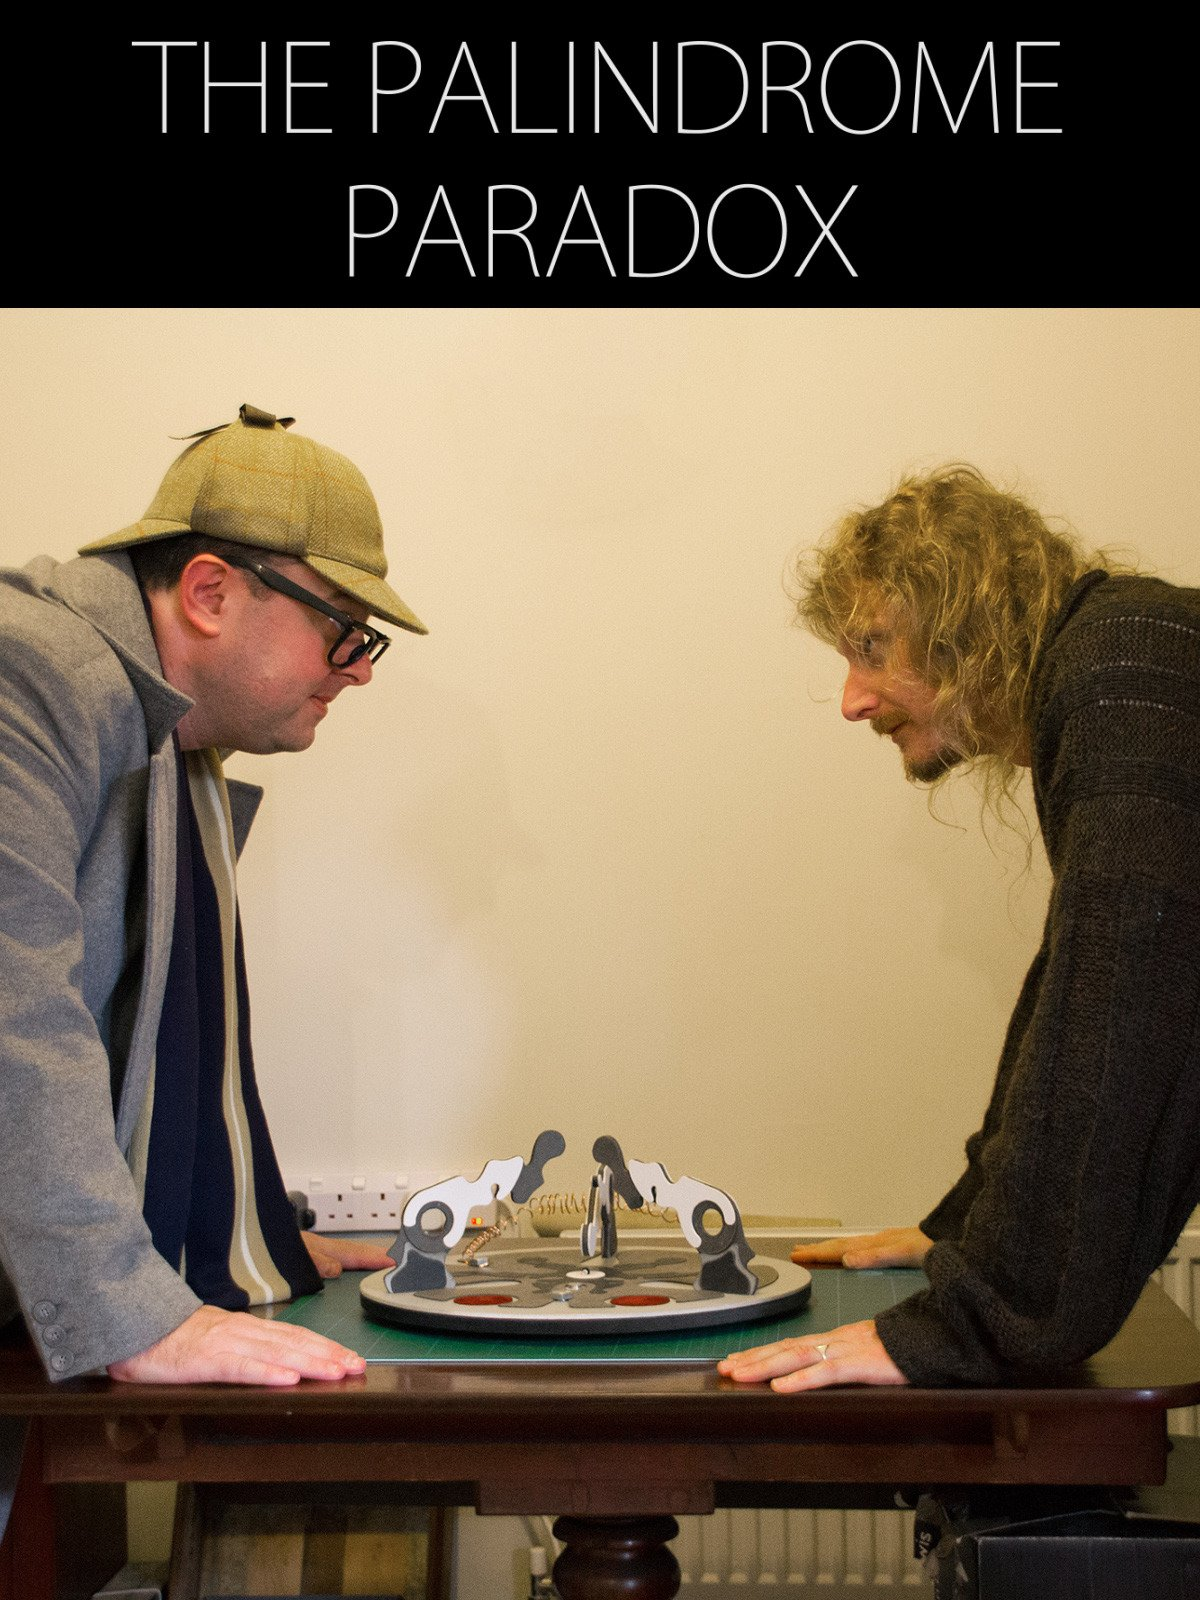 The Palindrome Paradox